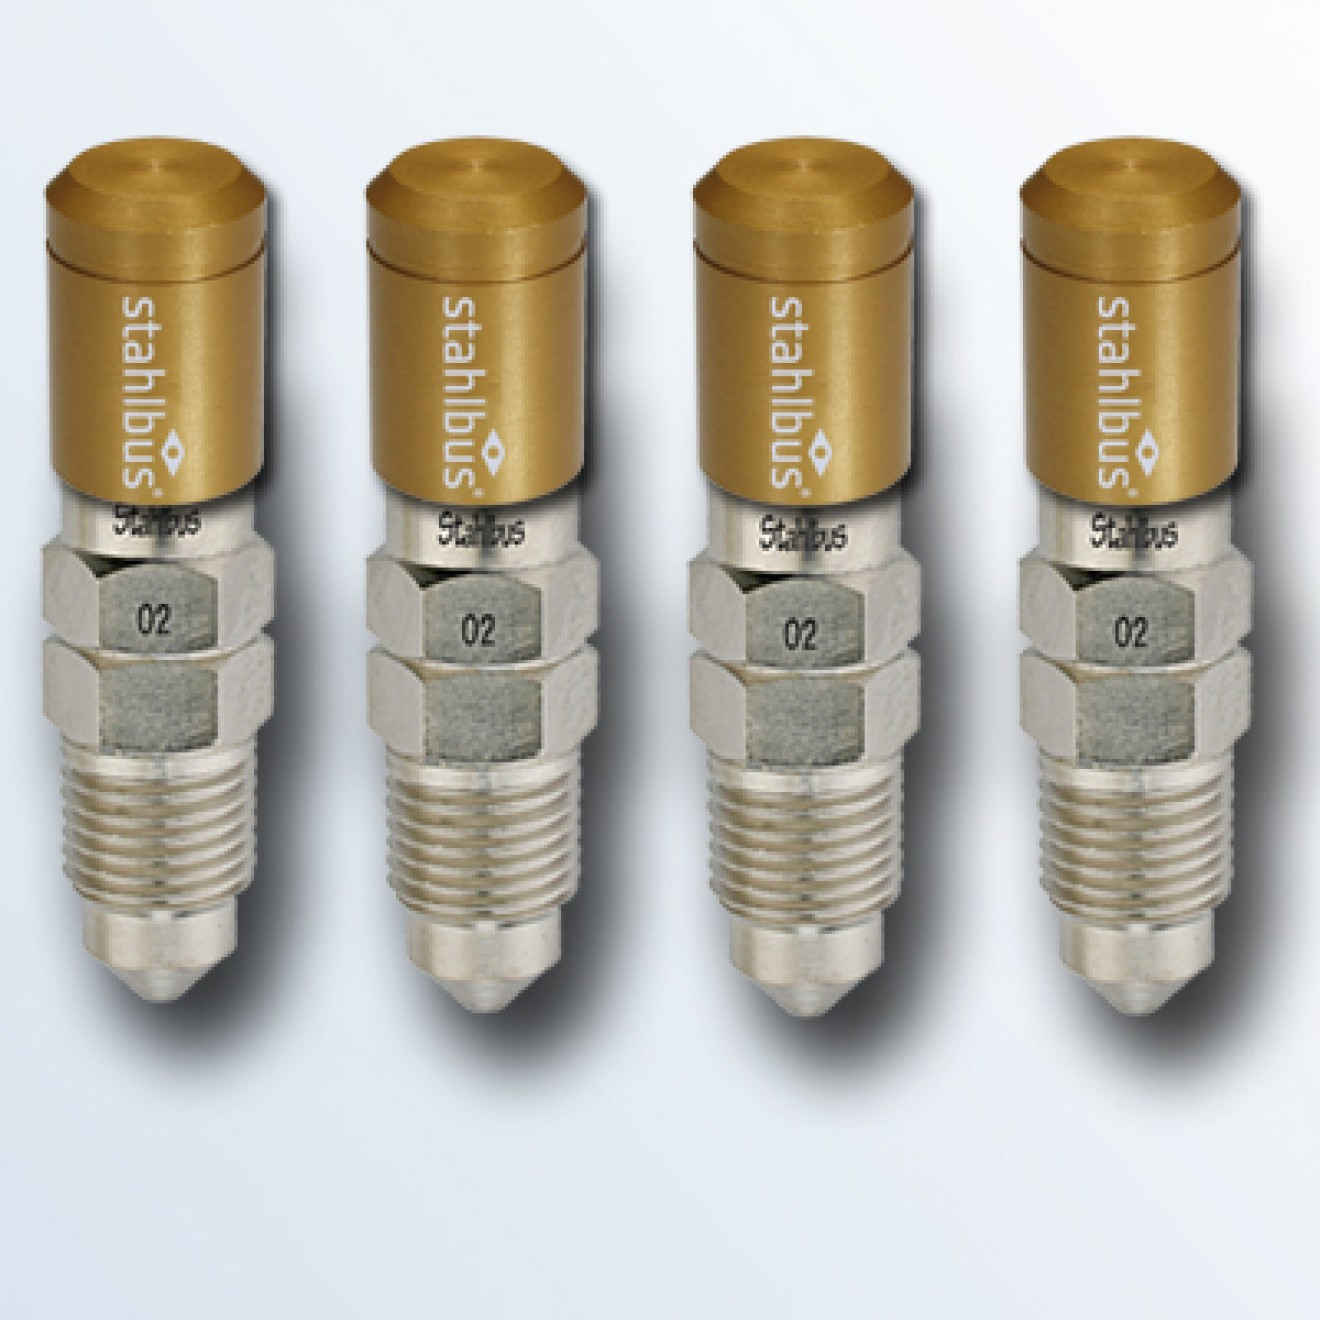 4-piece set stahlbus Bleeder valve M10x1.0x14mm (S), steel with golden dust cap